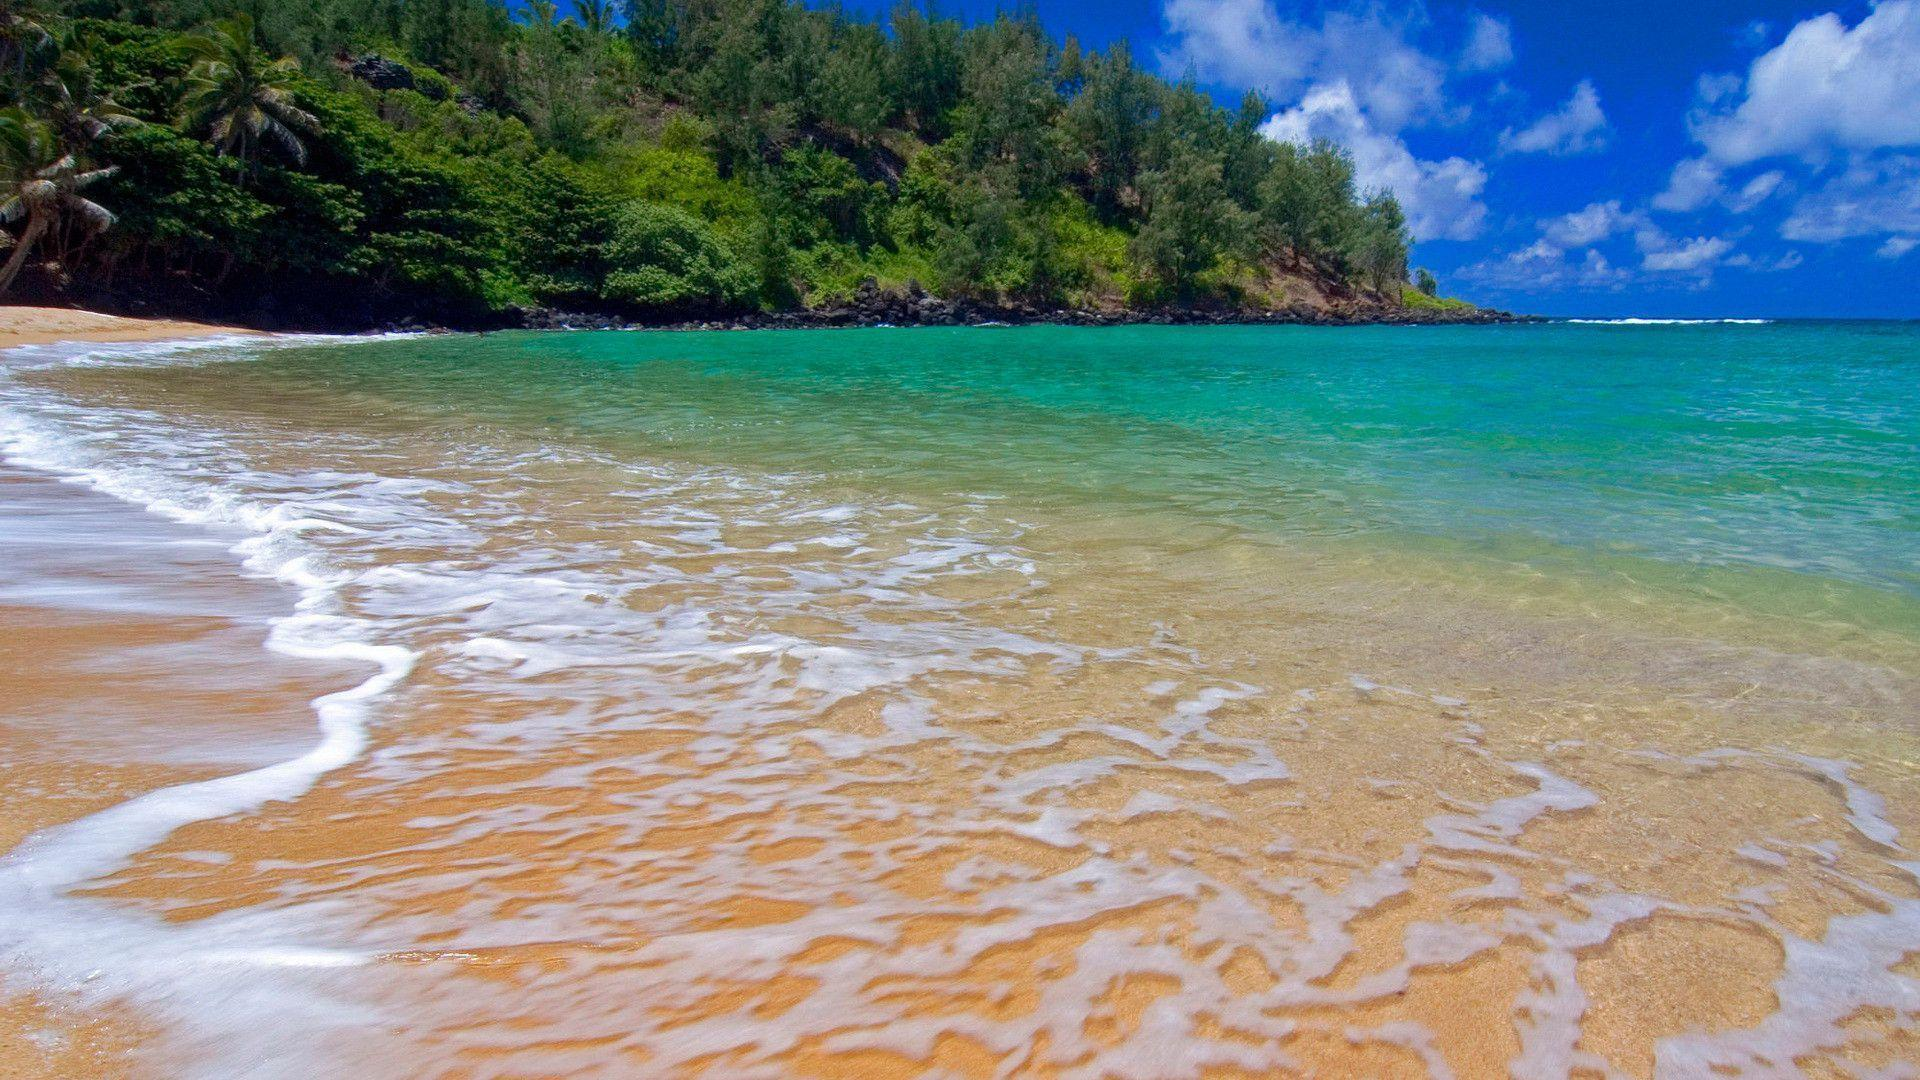 Download The Best Quality 1080p Beach Wallpaper